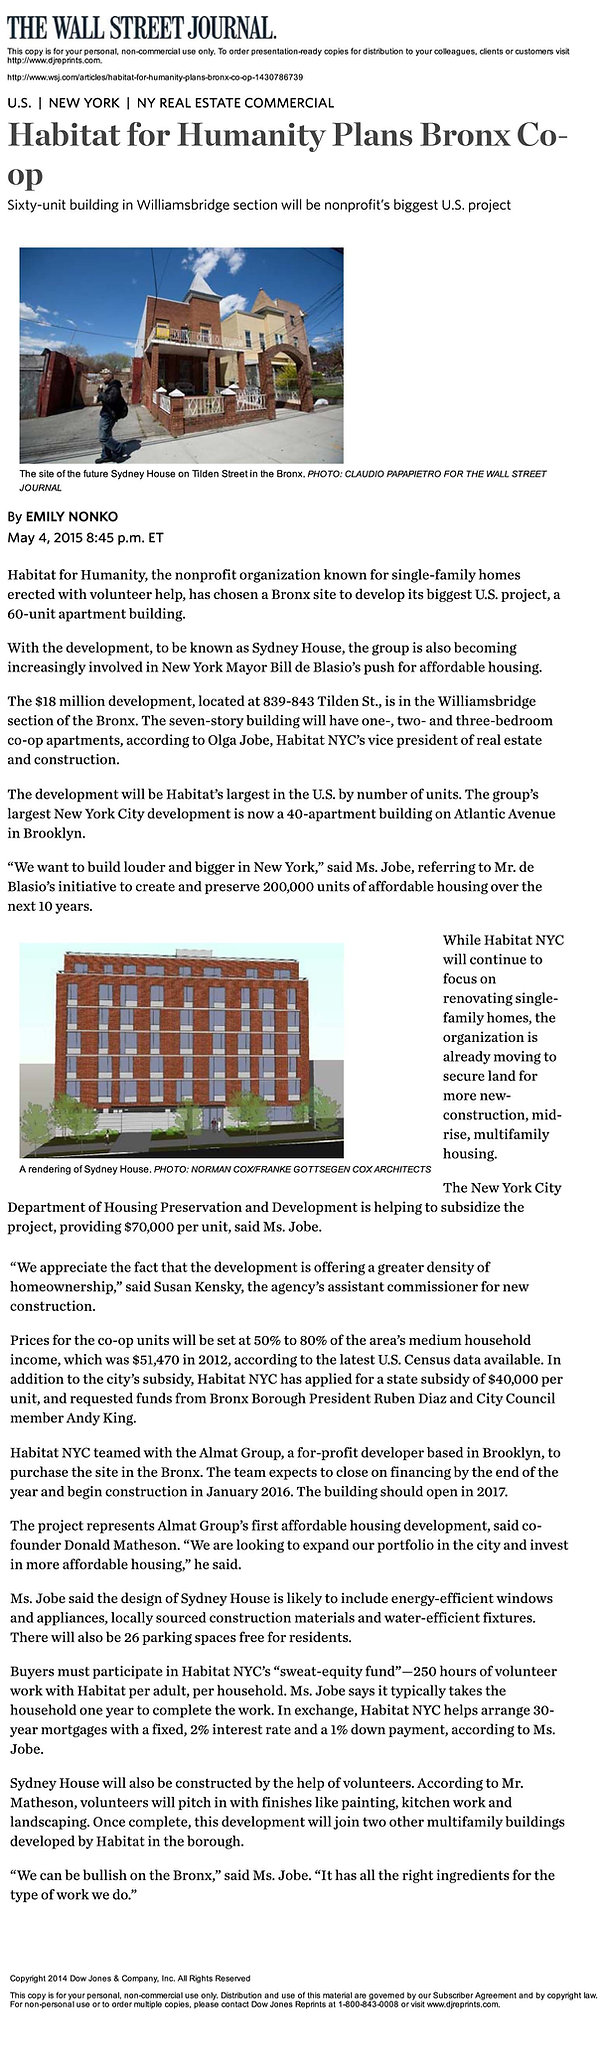 Habitat-for-Humanity-Plans-Bronx-Co-op-W